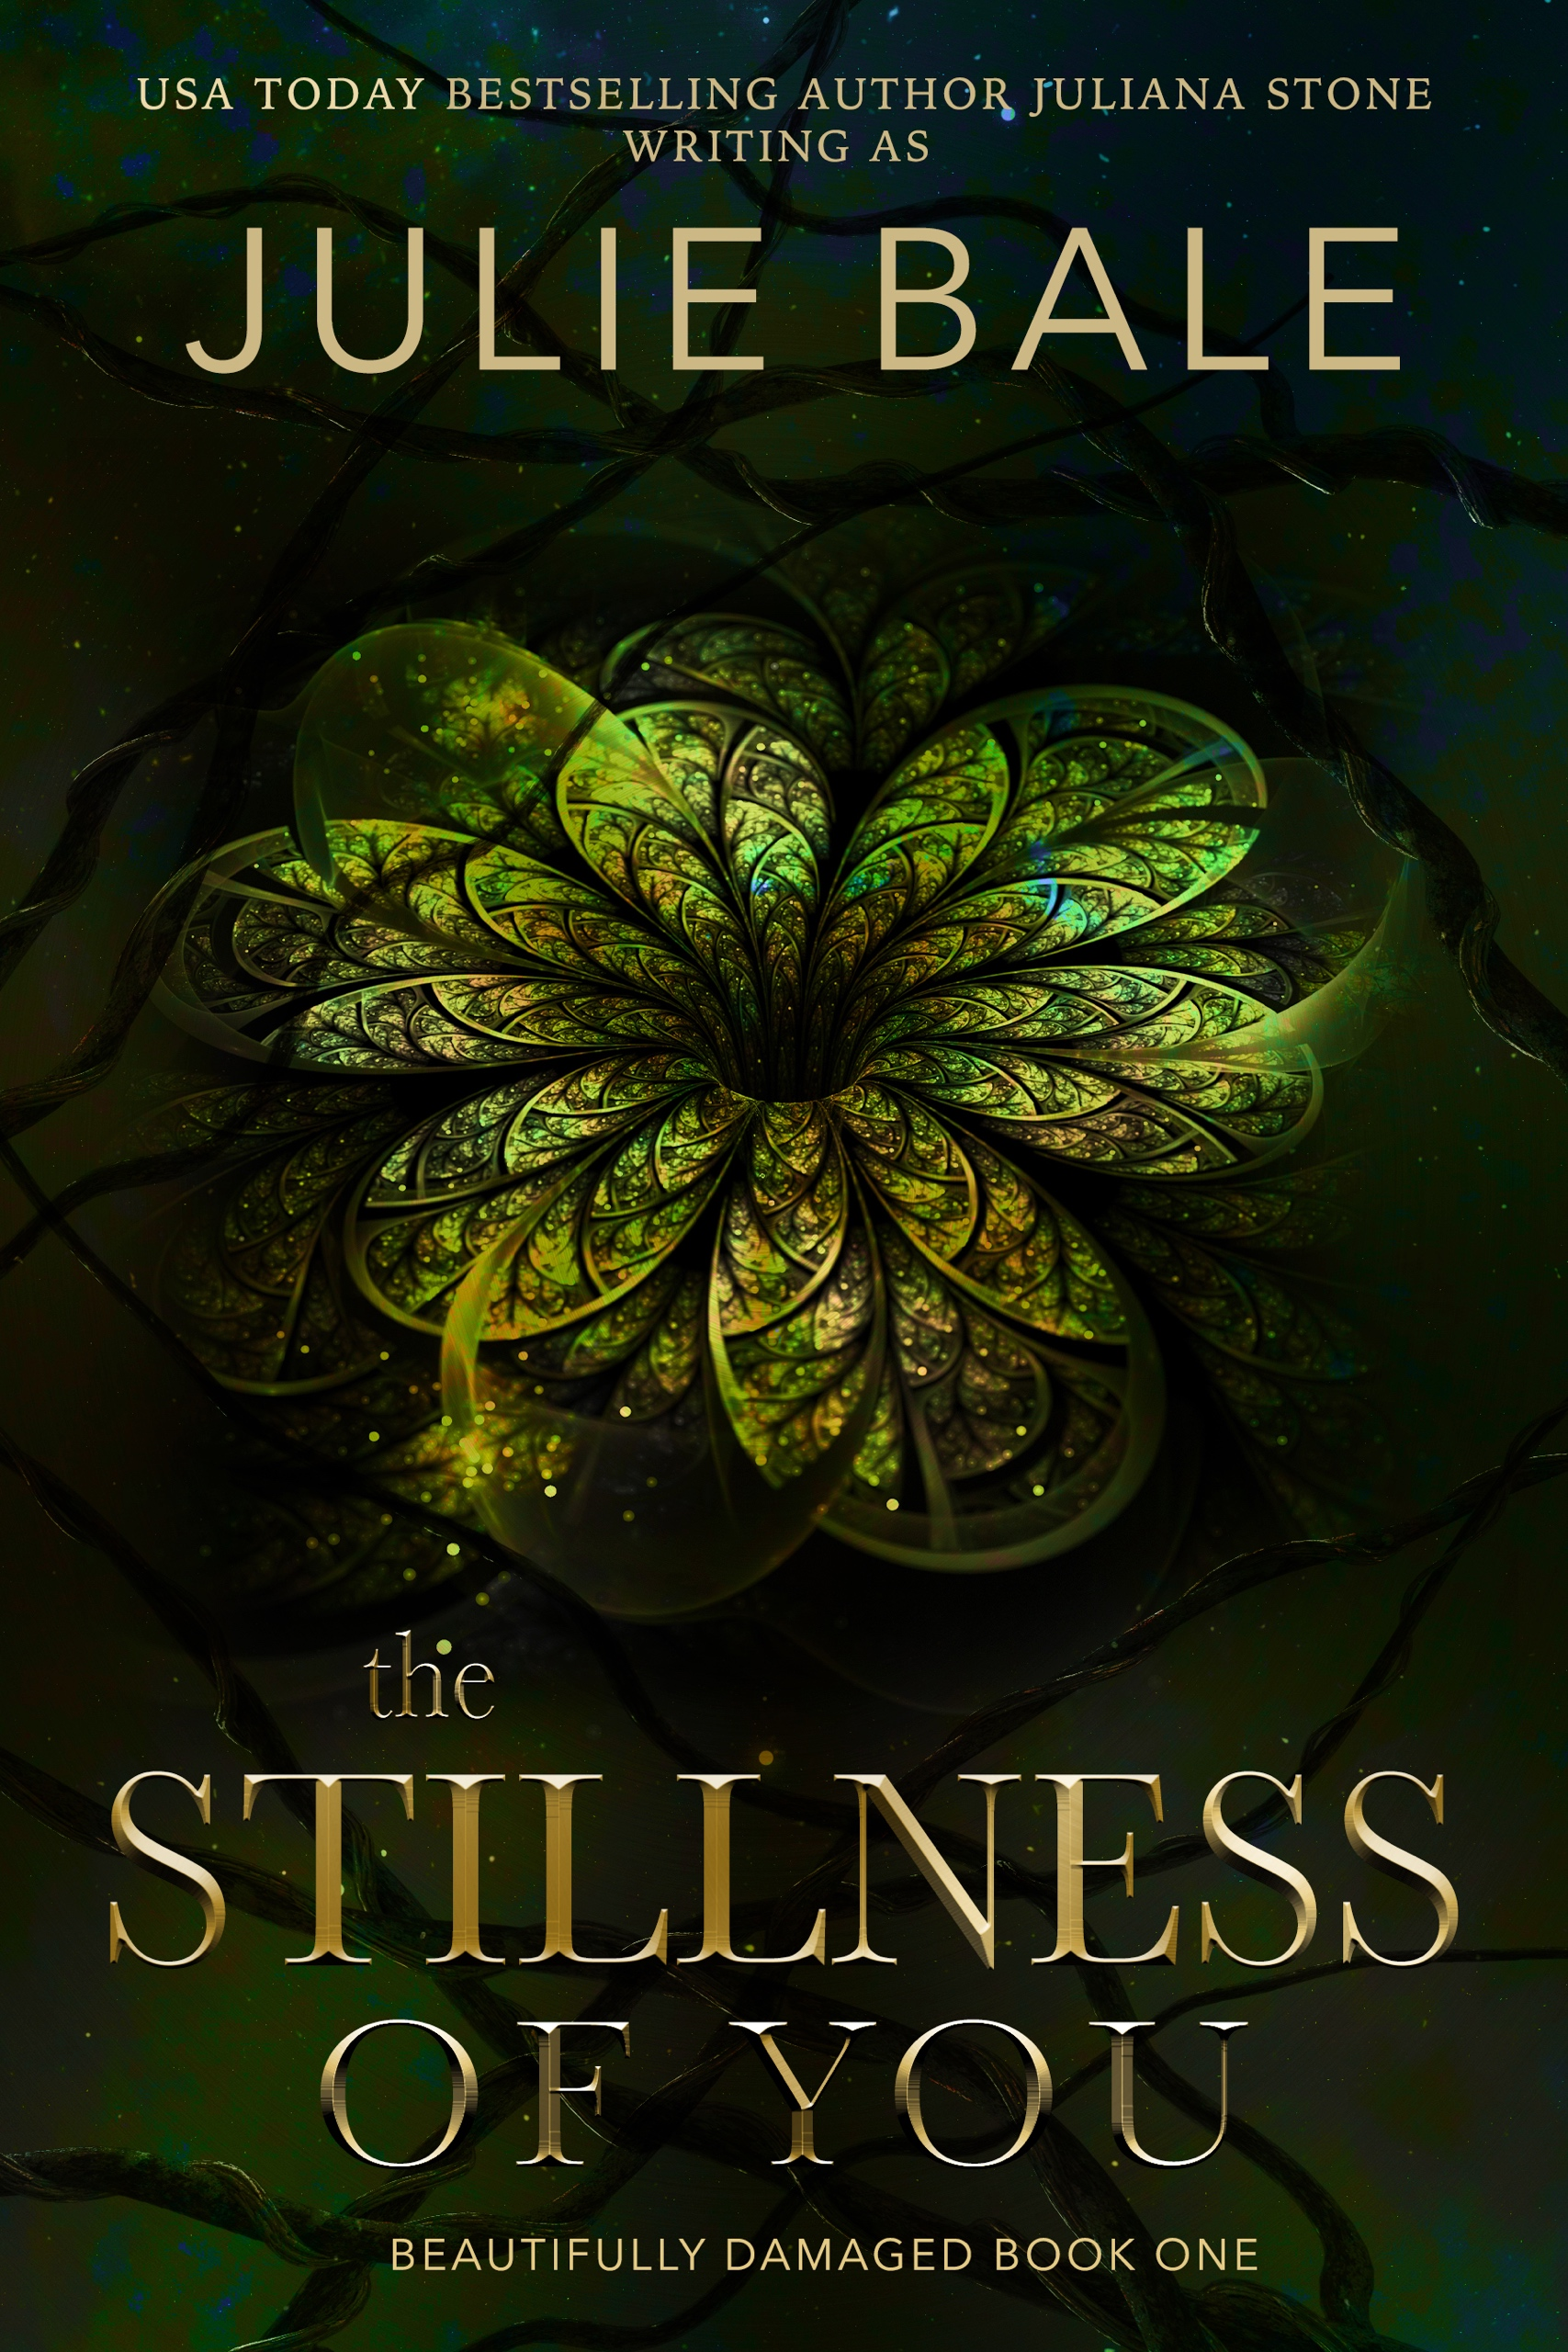 The Stillness Of You by Juliana Stone